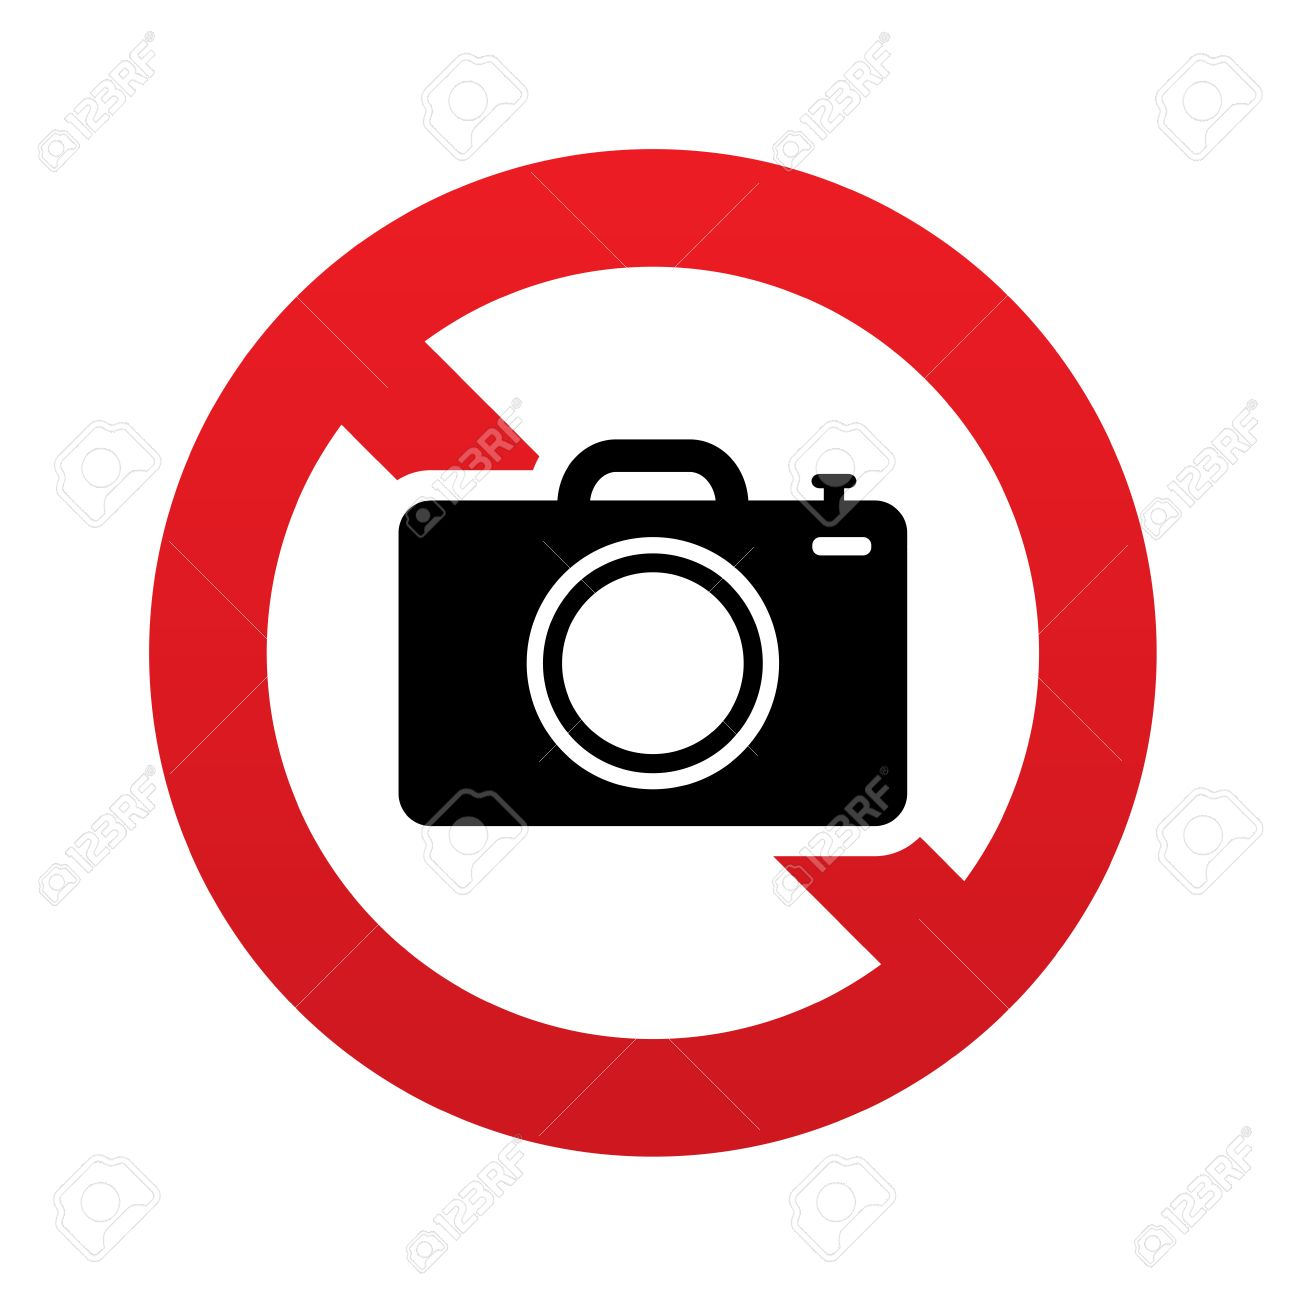 No photo pics 4